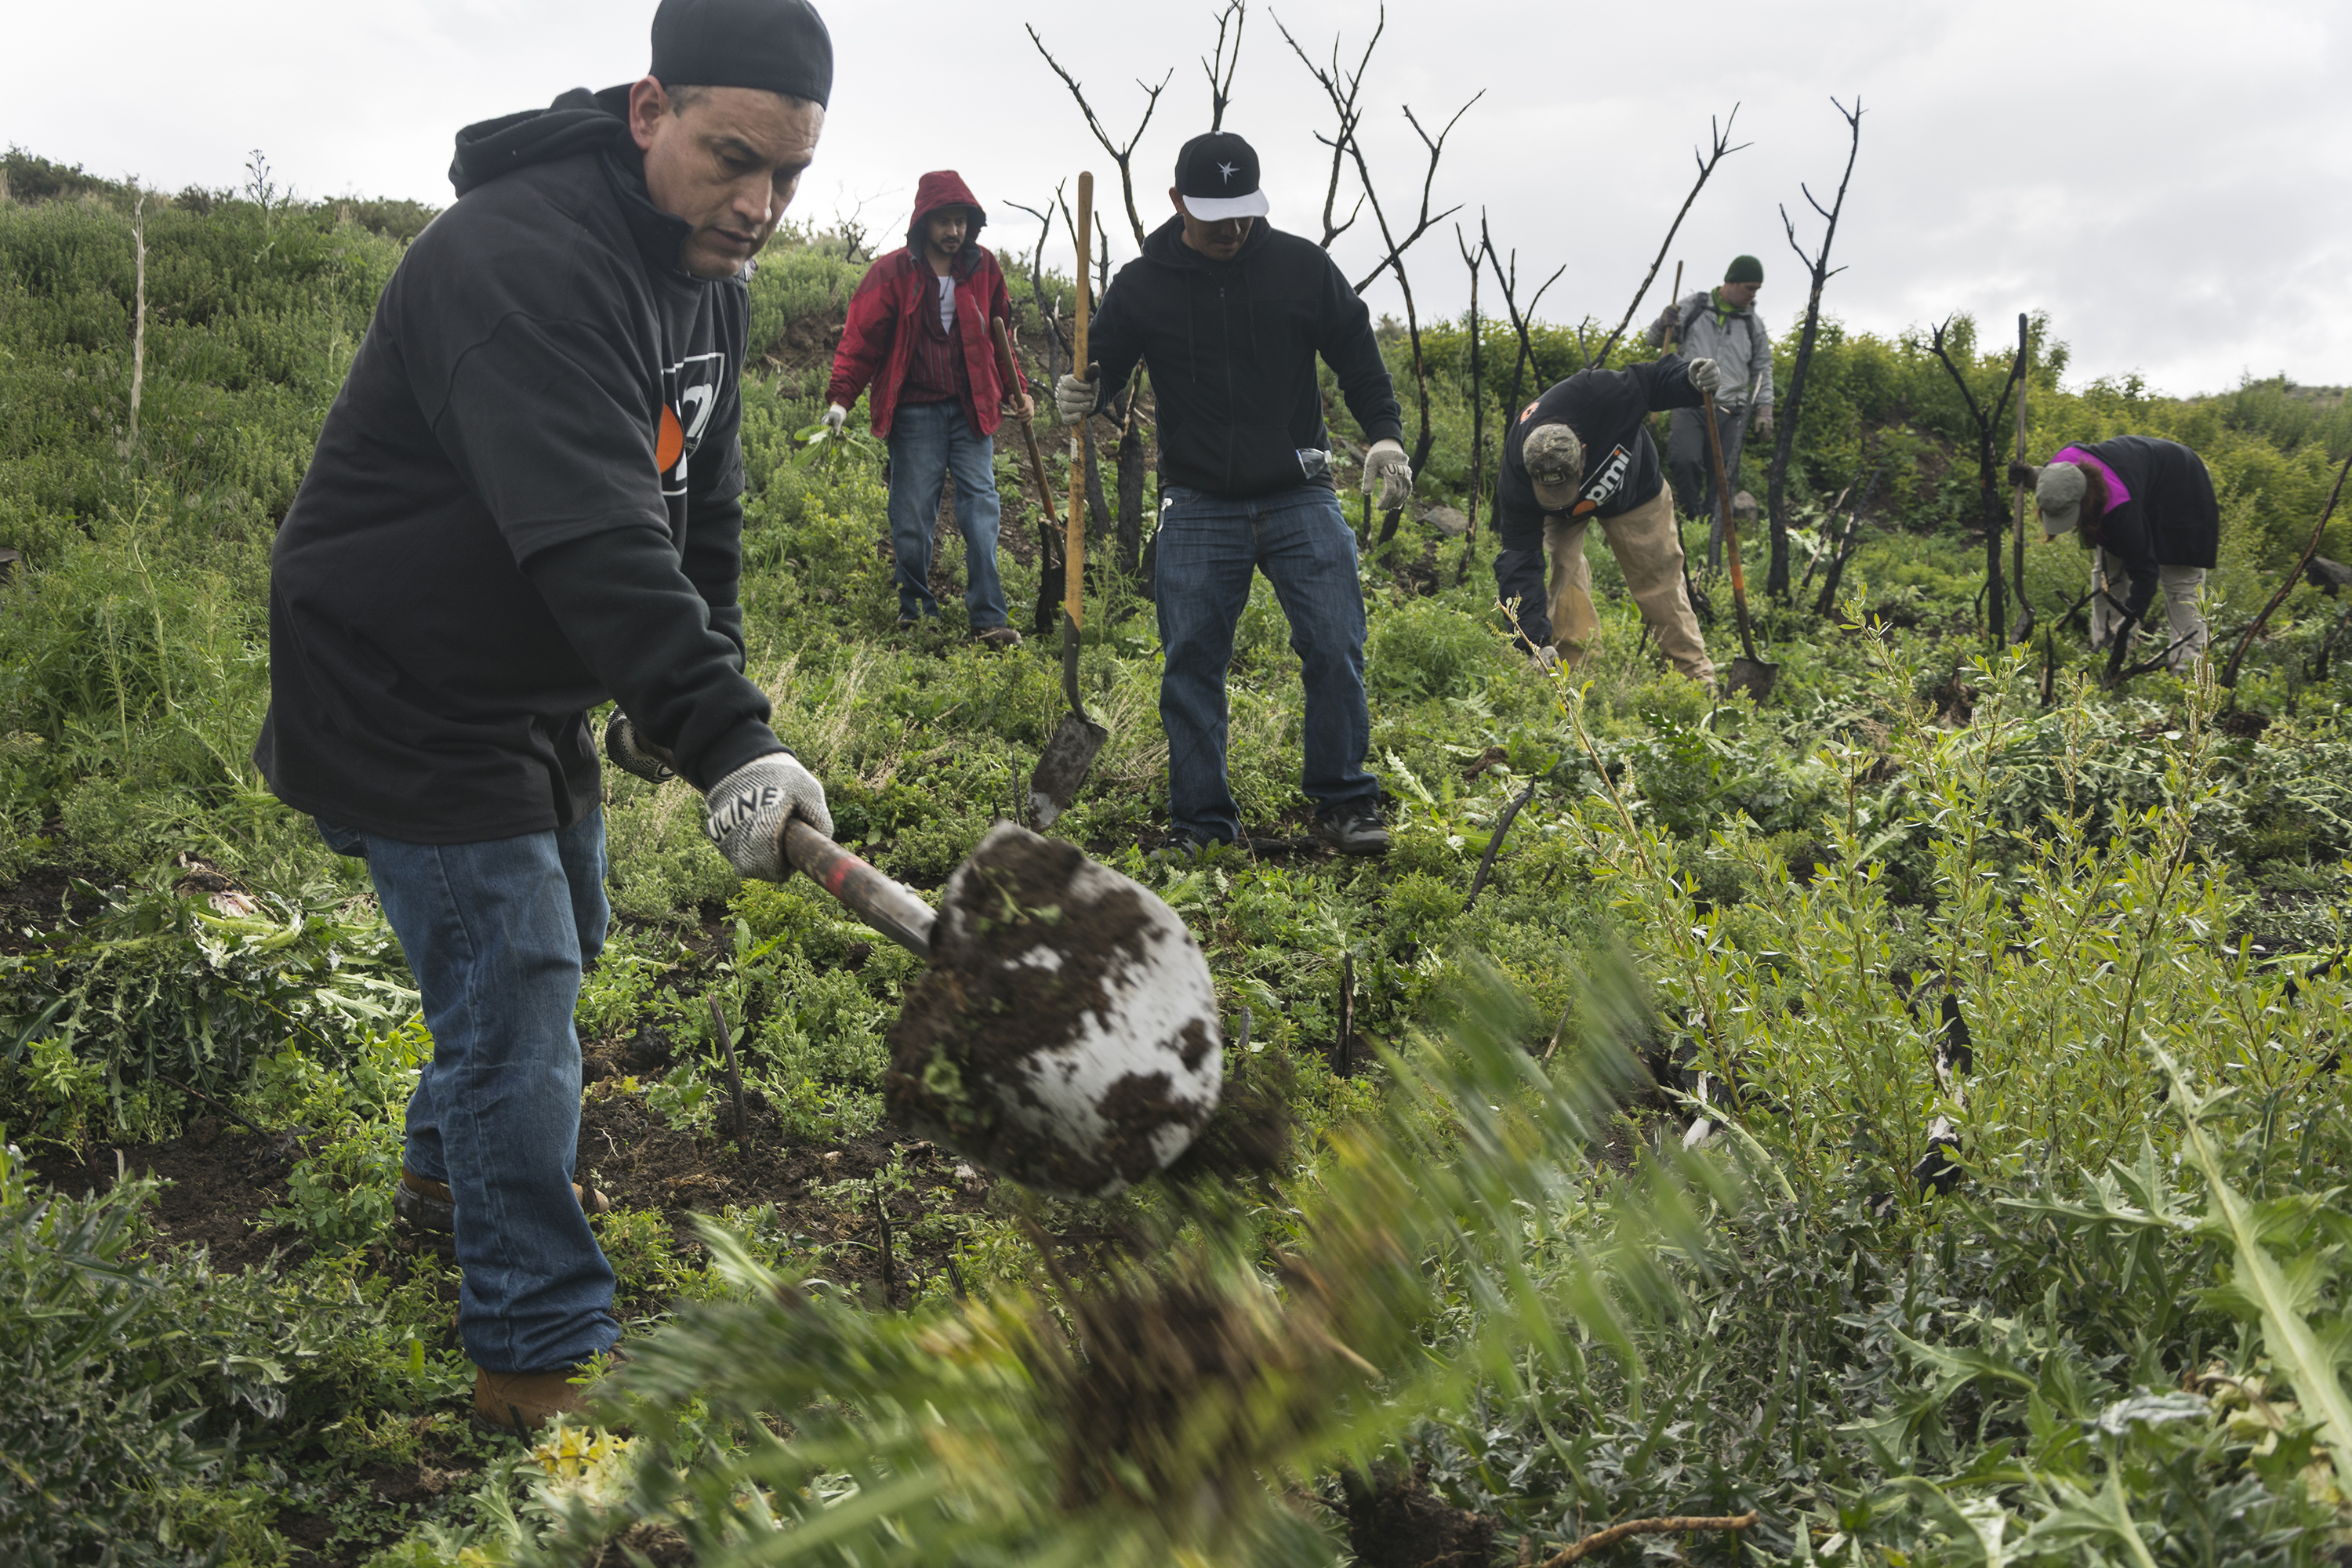 great-community-clean-up---mt-rose-wilderness-weed-warriors_26704592912_o.jpg